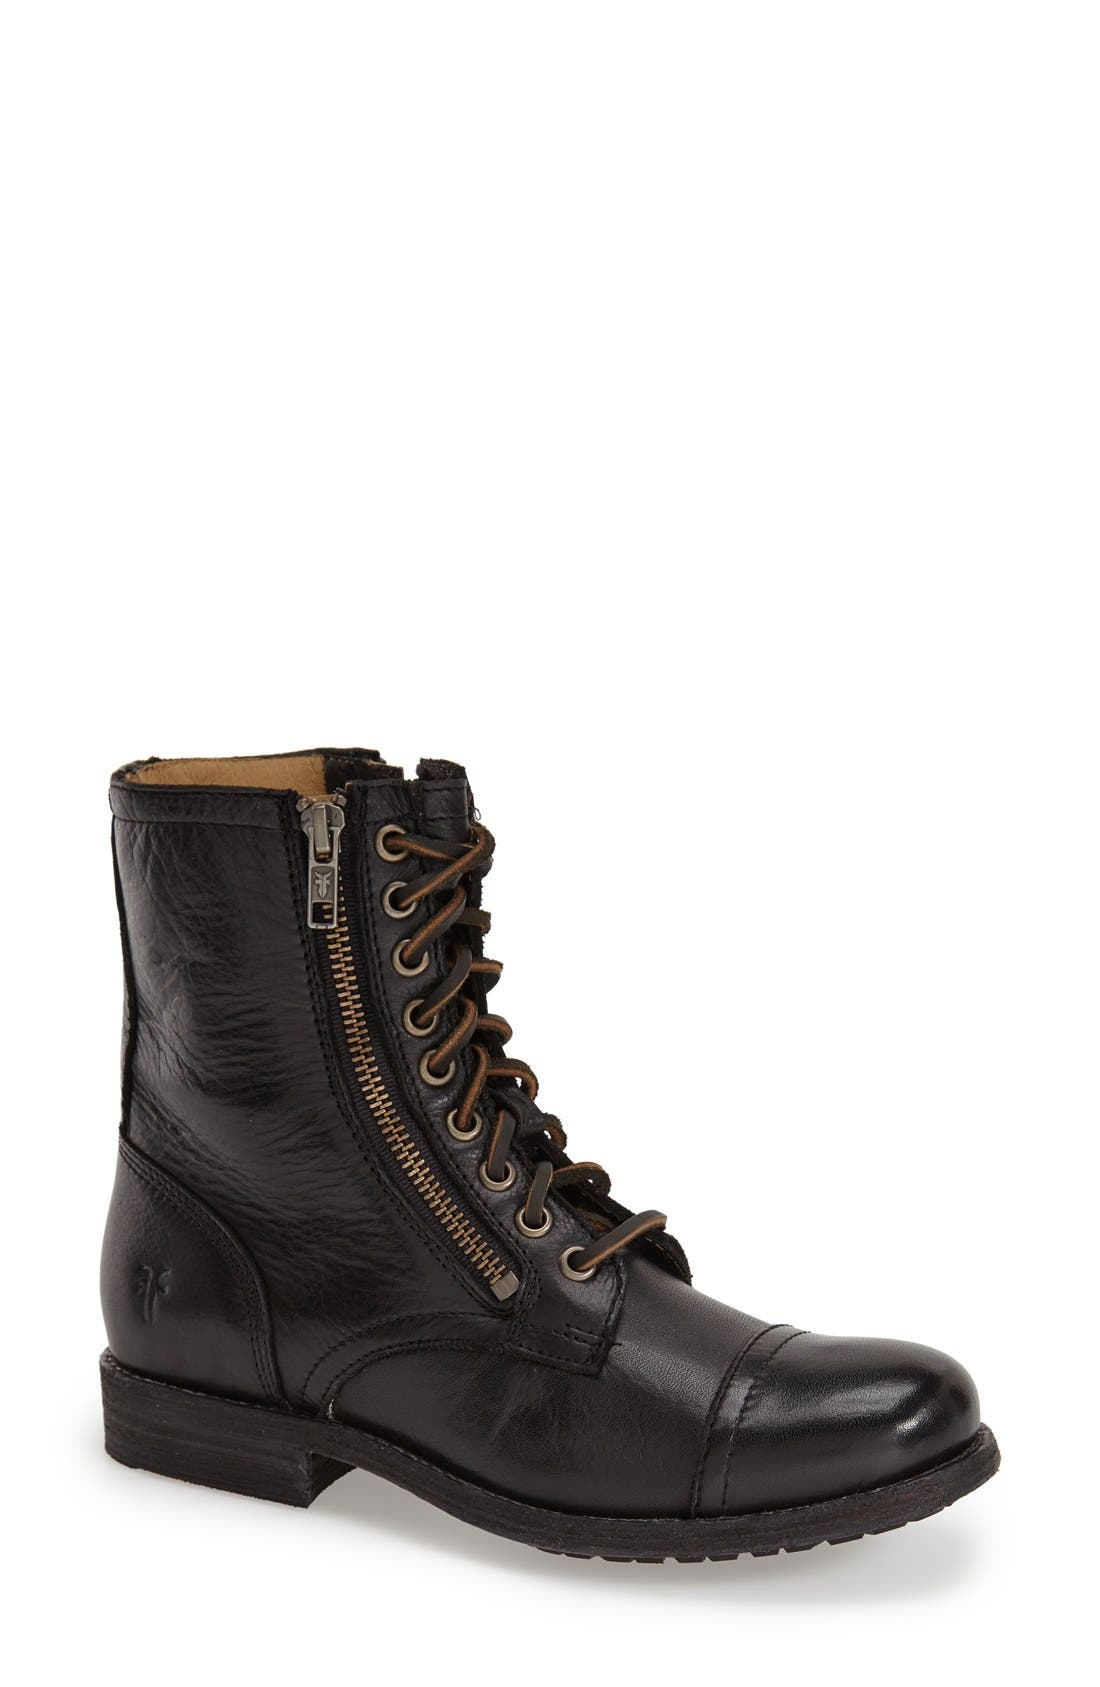 'Tyler' Double Zip Military Boot,                             Main thumbnail 1, color,                             001